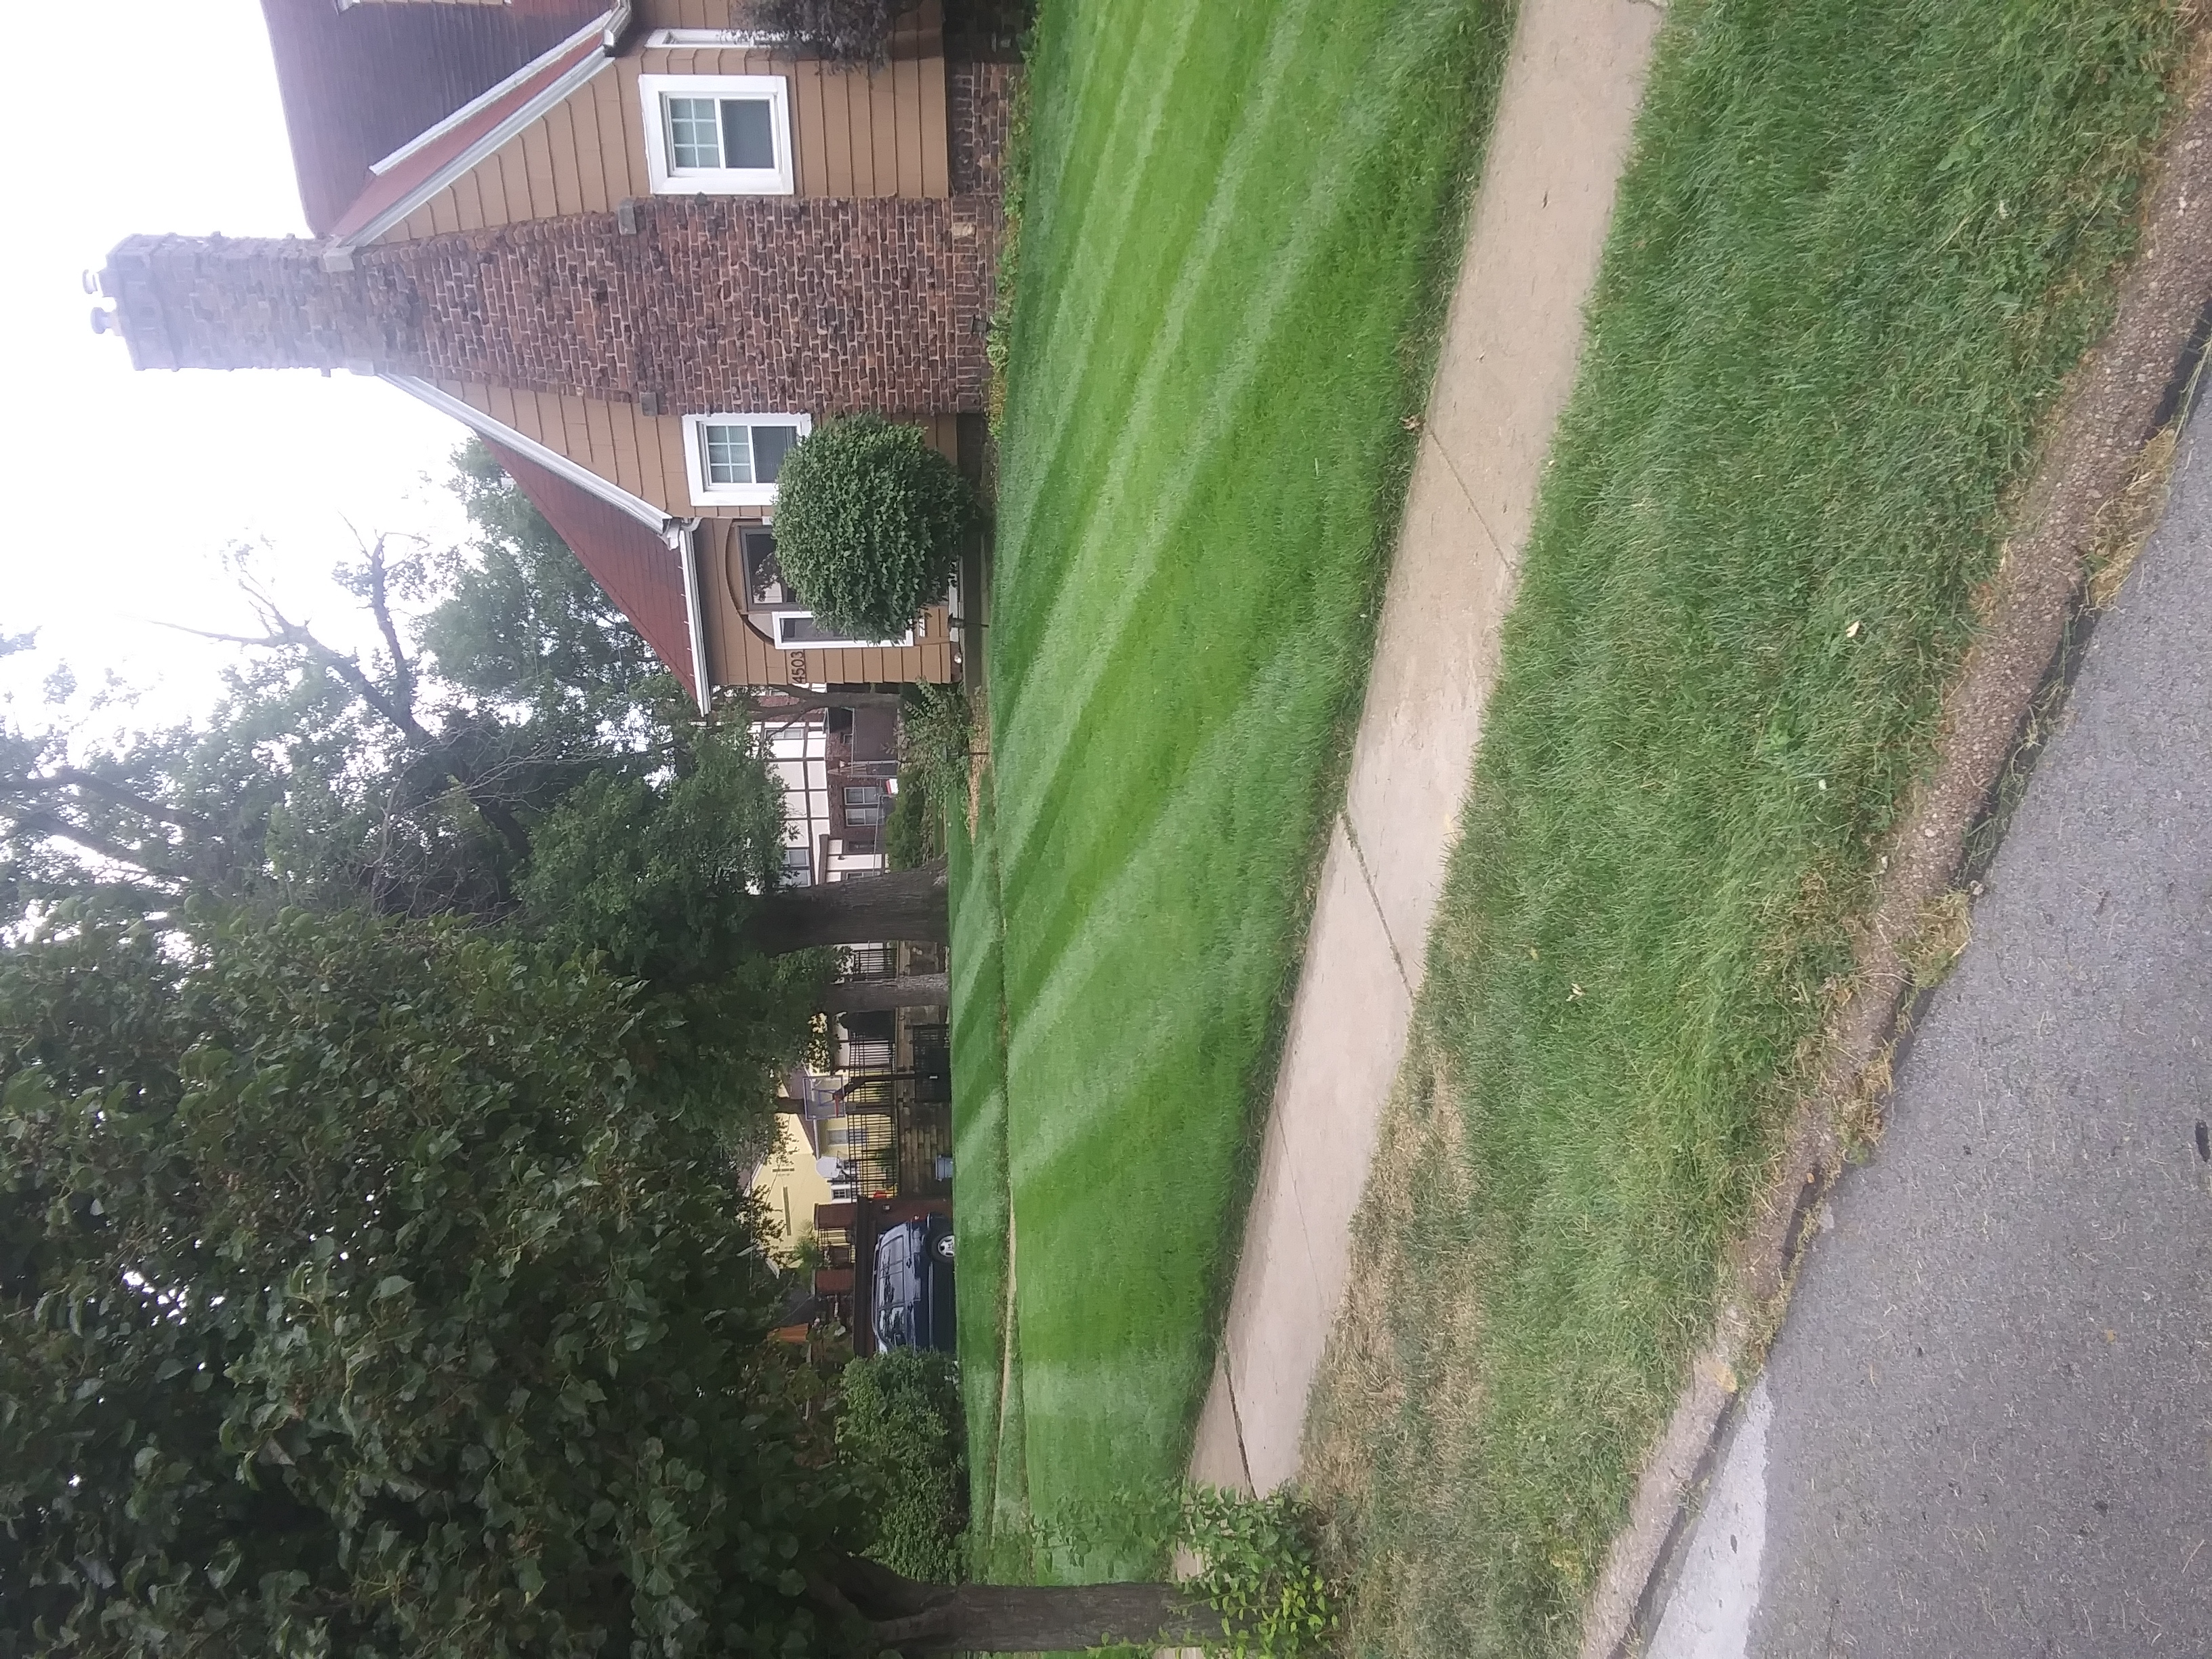 Lawn care service in Omaha